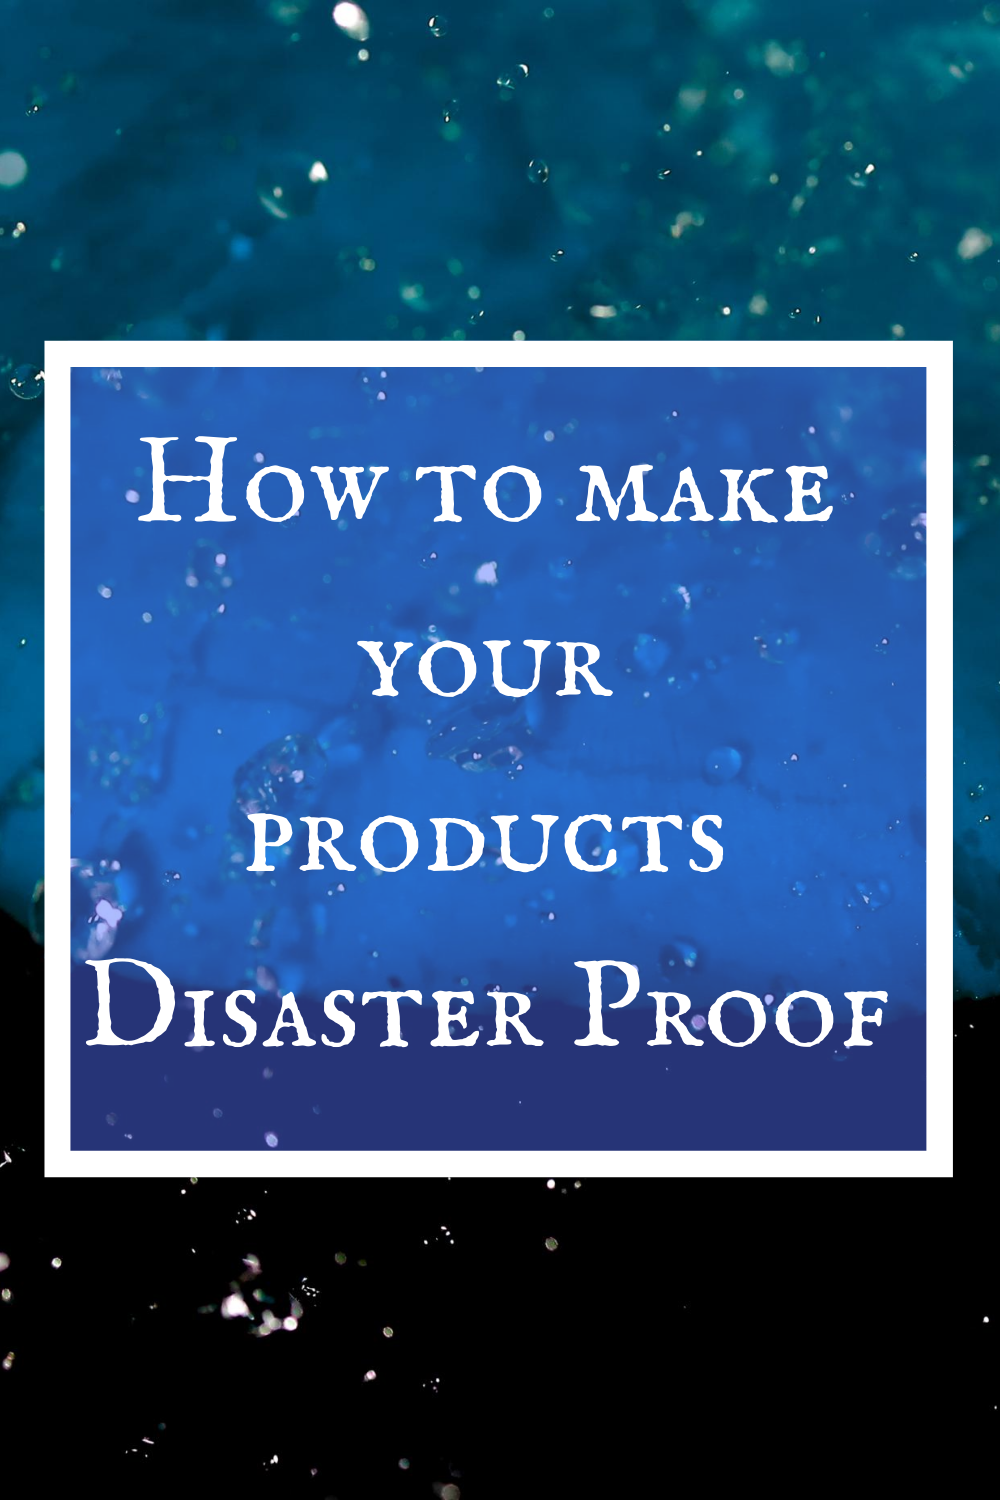 How to Make Your Products Disaster Proof